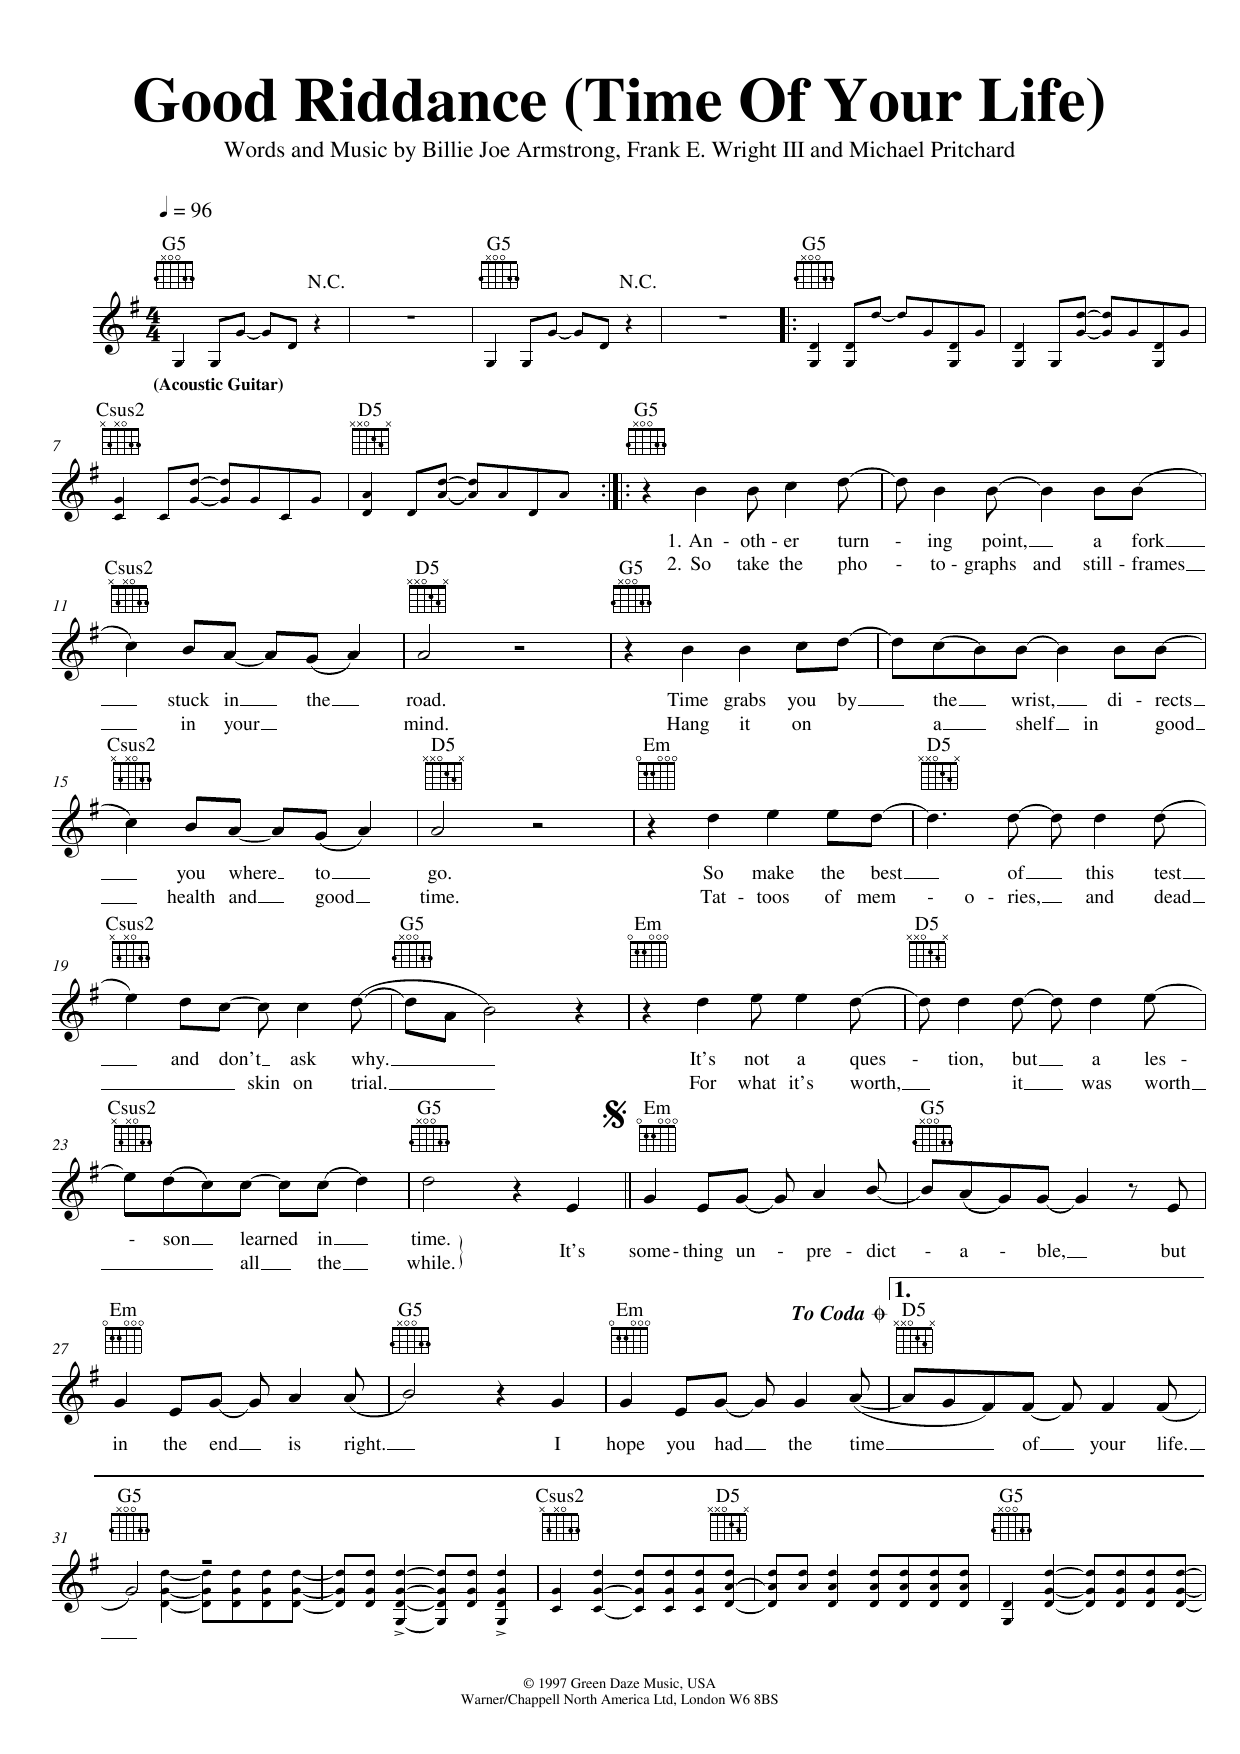 Good Riddance Time Of Your Life Sheet Music Green Day Melody